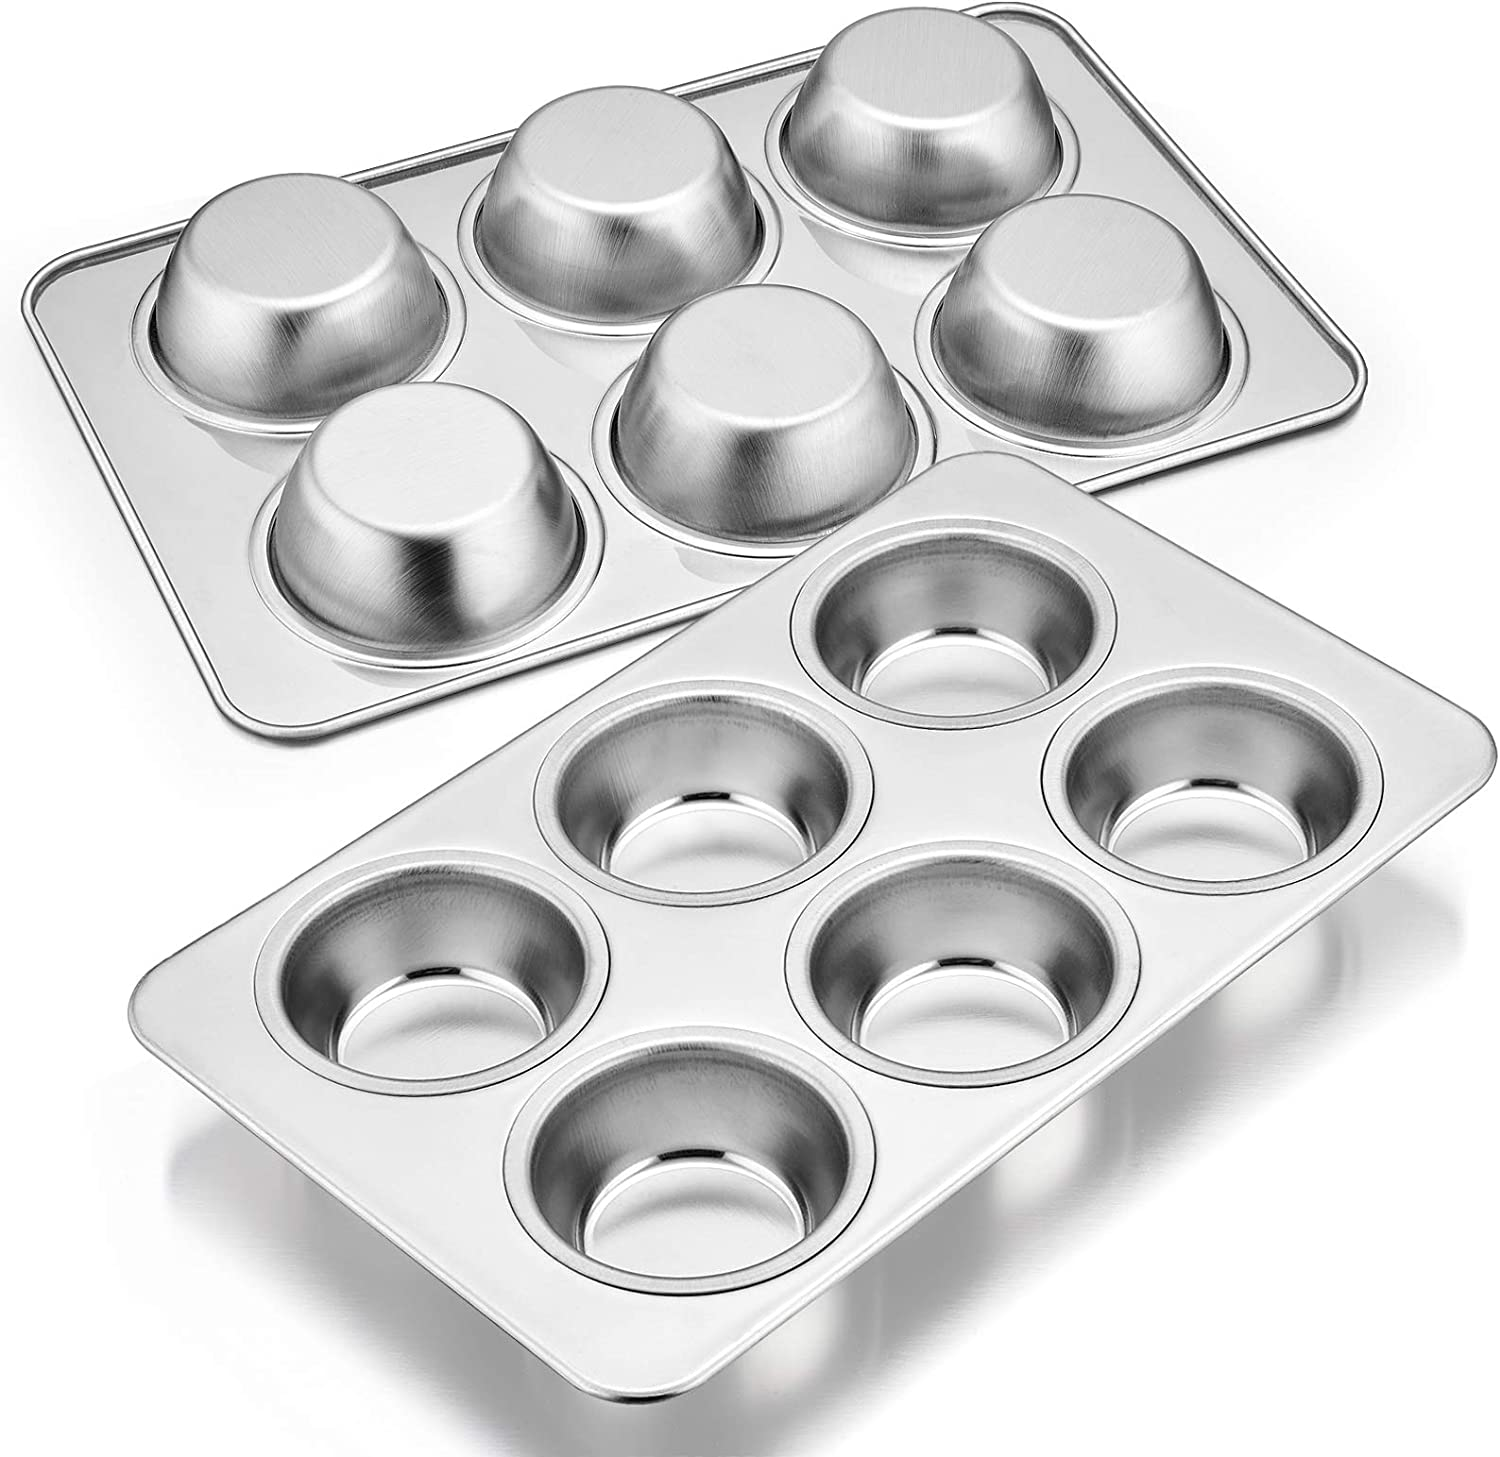 Muffin Pan Set of 2, E-far Stainless Steel Muffin Pan Tin for Baking, 6-Cup Metal Cupcake Pan Tray, Non-toxic & Healthy, Oven & Dishwasher Safe, Regular Size - 11.44 x 7.12 x 1.25 inch